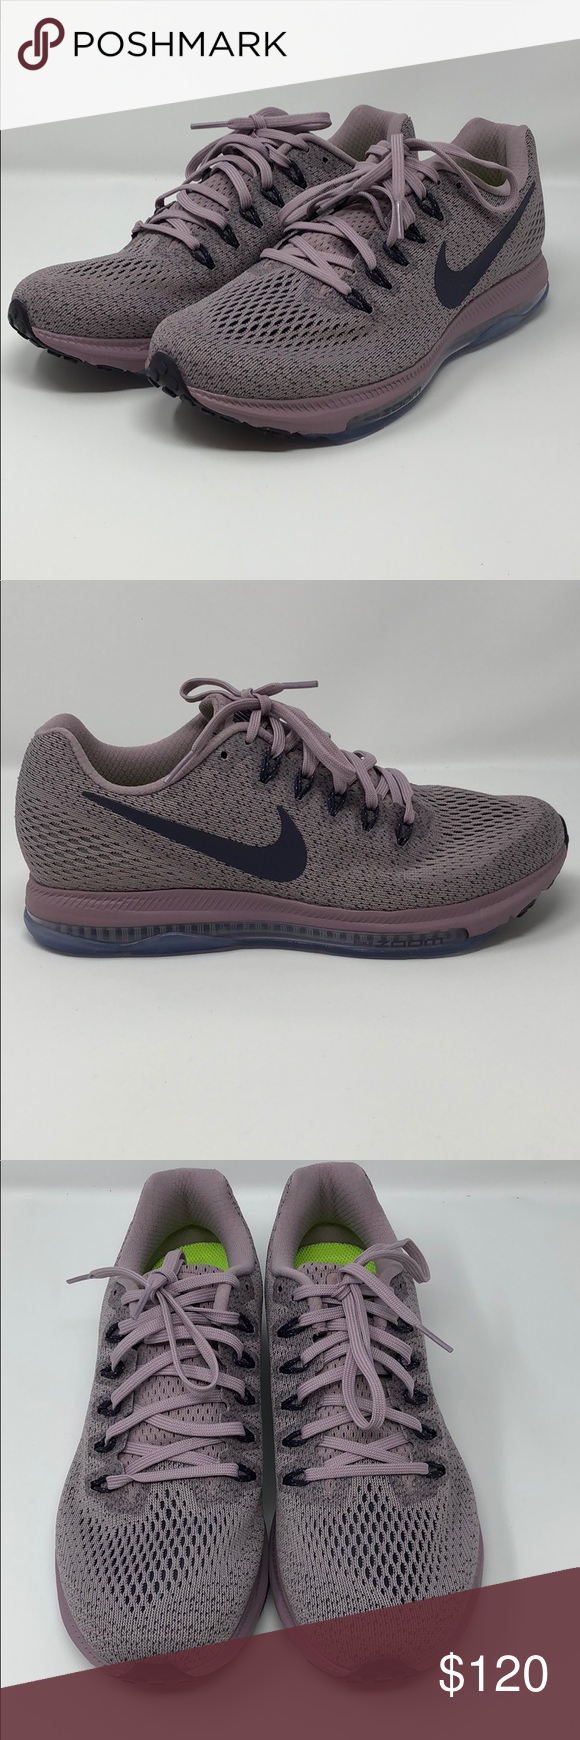 6faa70946414 Women s Nike Zoom All Out Low Plum Fog.  No Box  878671-500 Colour ...